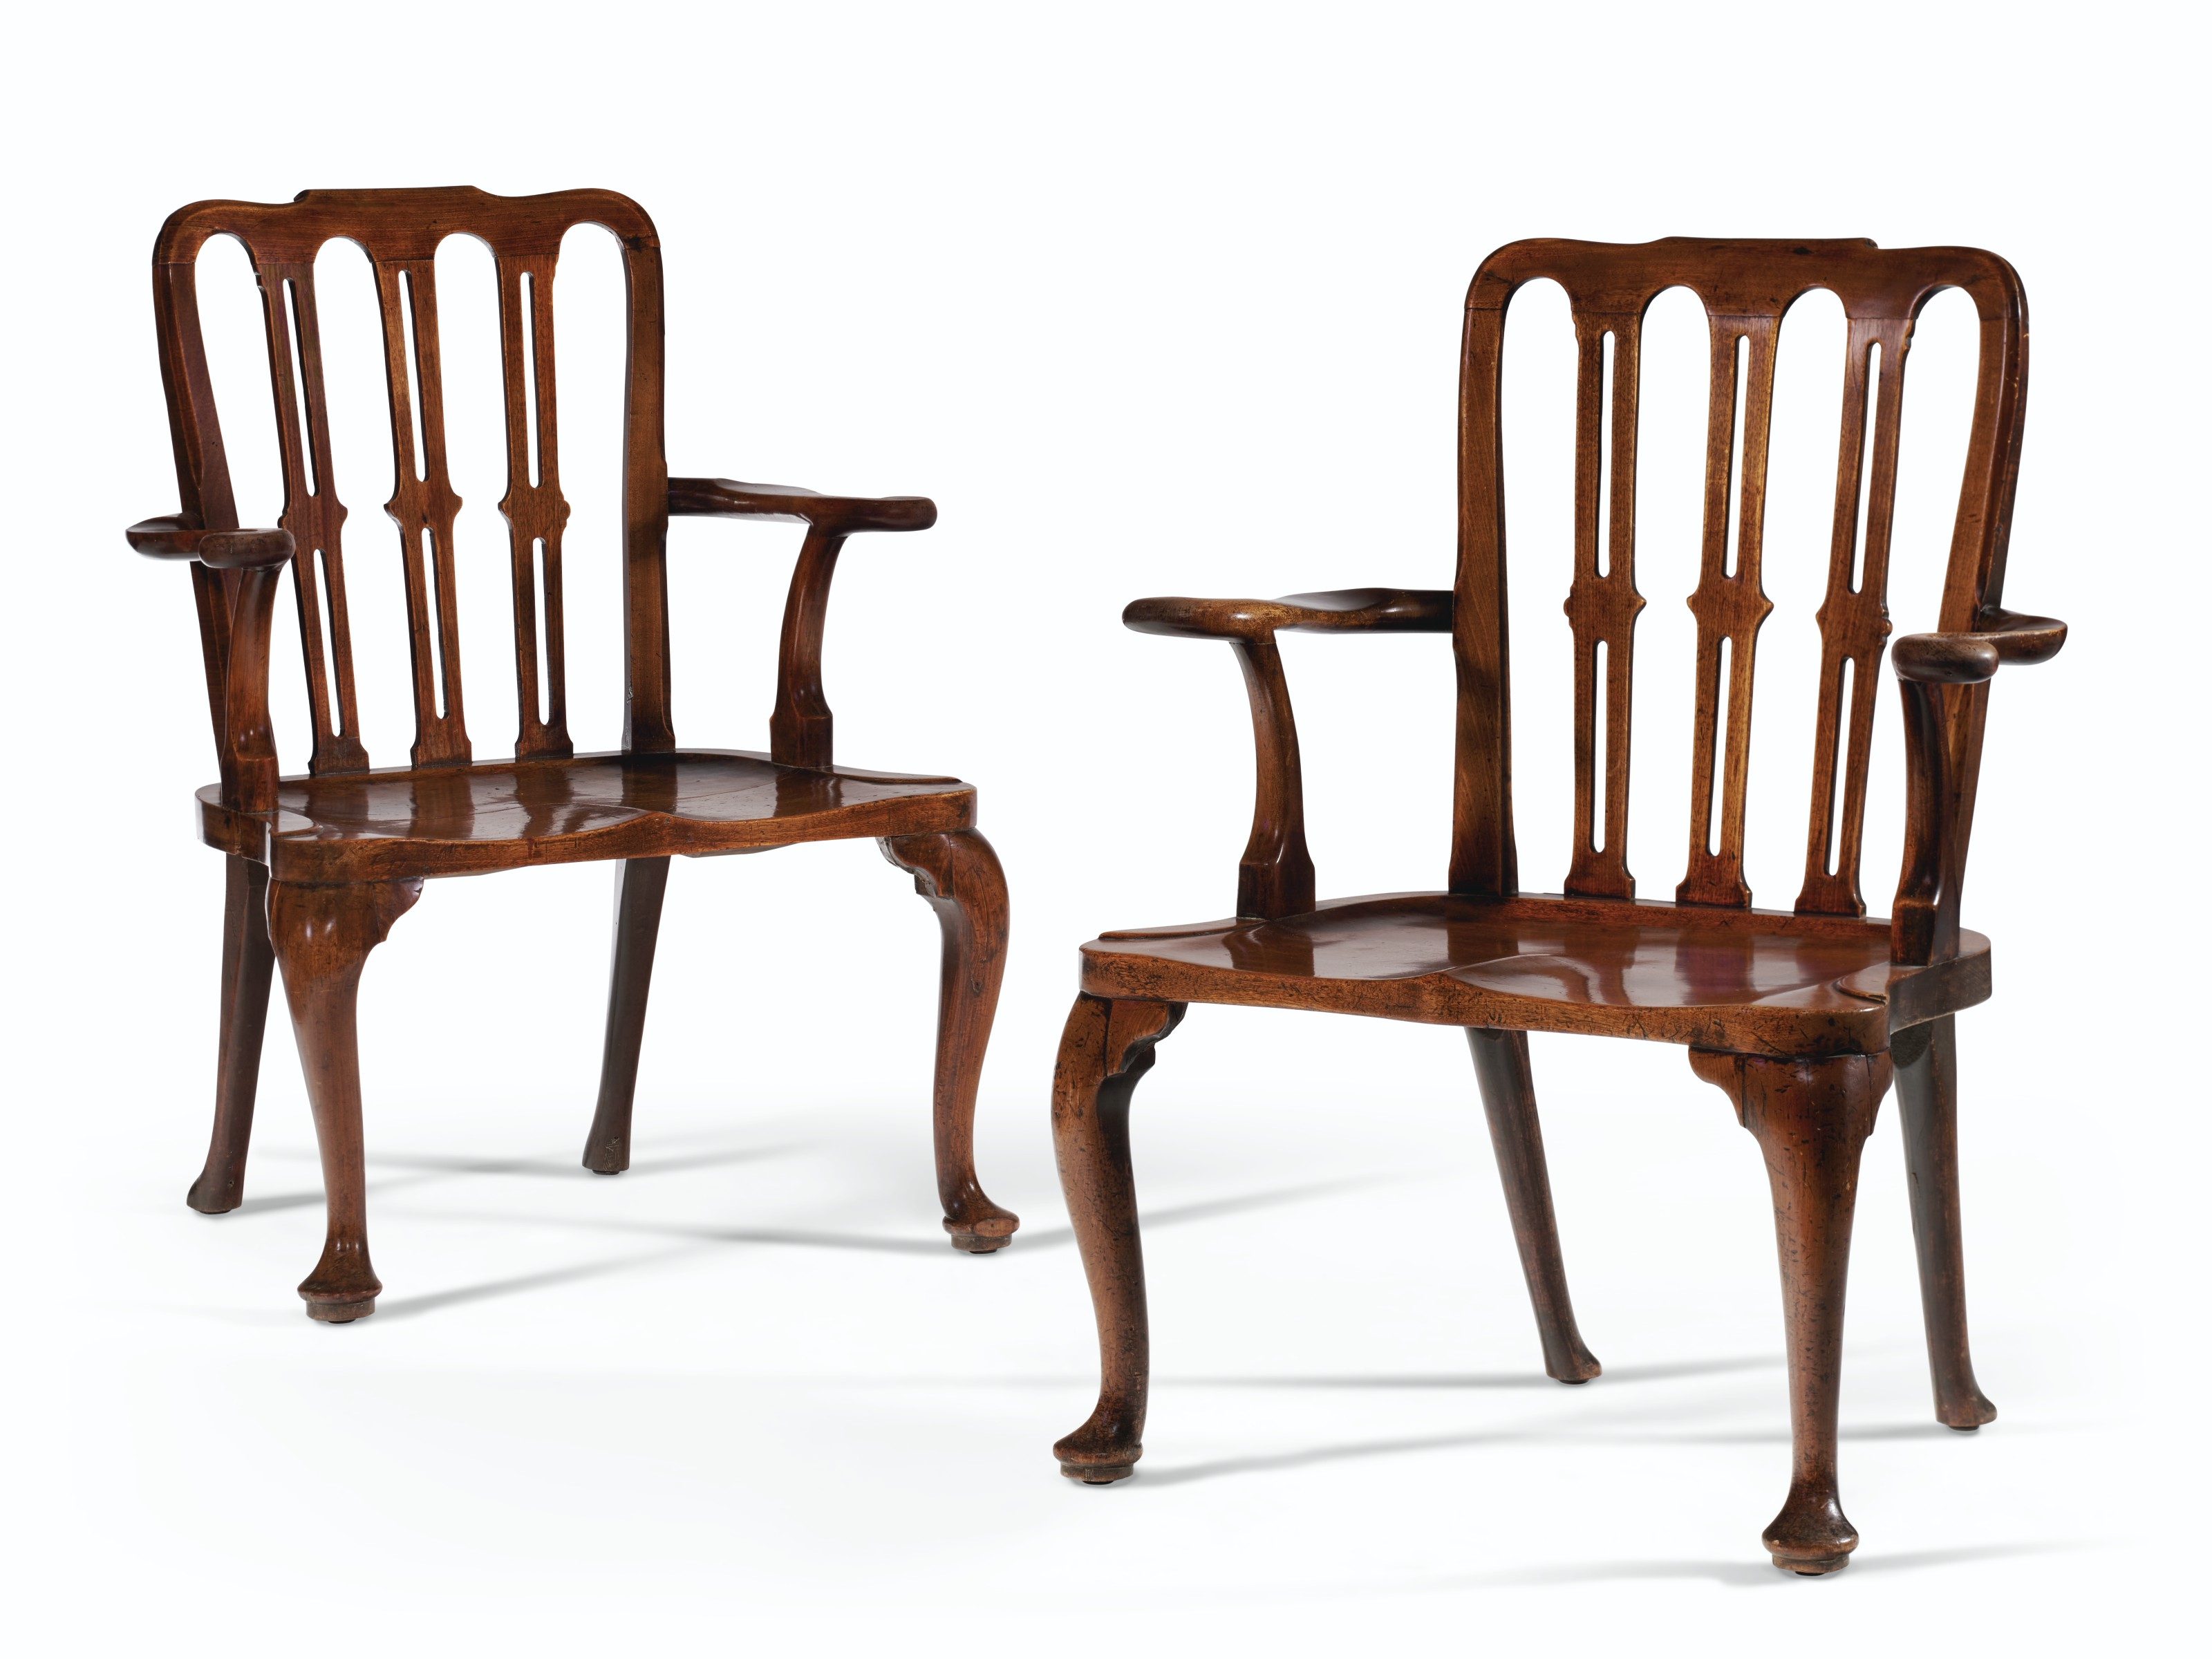 A pair of George II solid mahogany hall armchairs, mid-18th century. Estimate $10,000-15,000. Offered in The Collector English & European Furniture, Ceramics, Silver & Works of Art on 5-19 October 2021 at Christie's Online